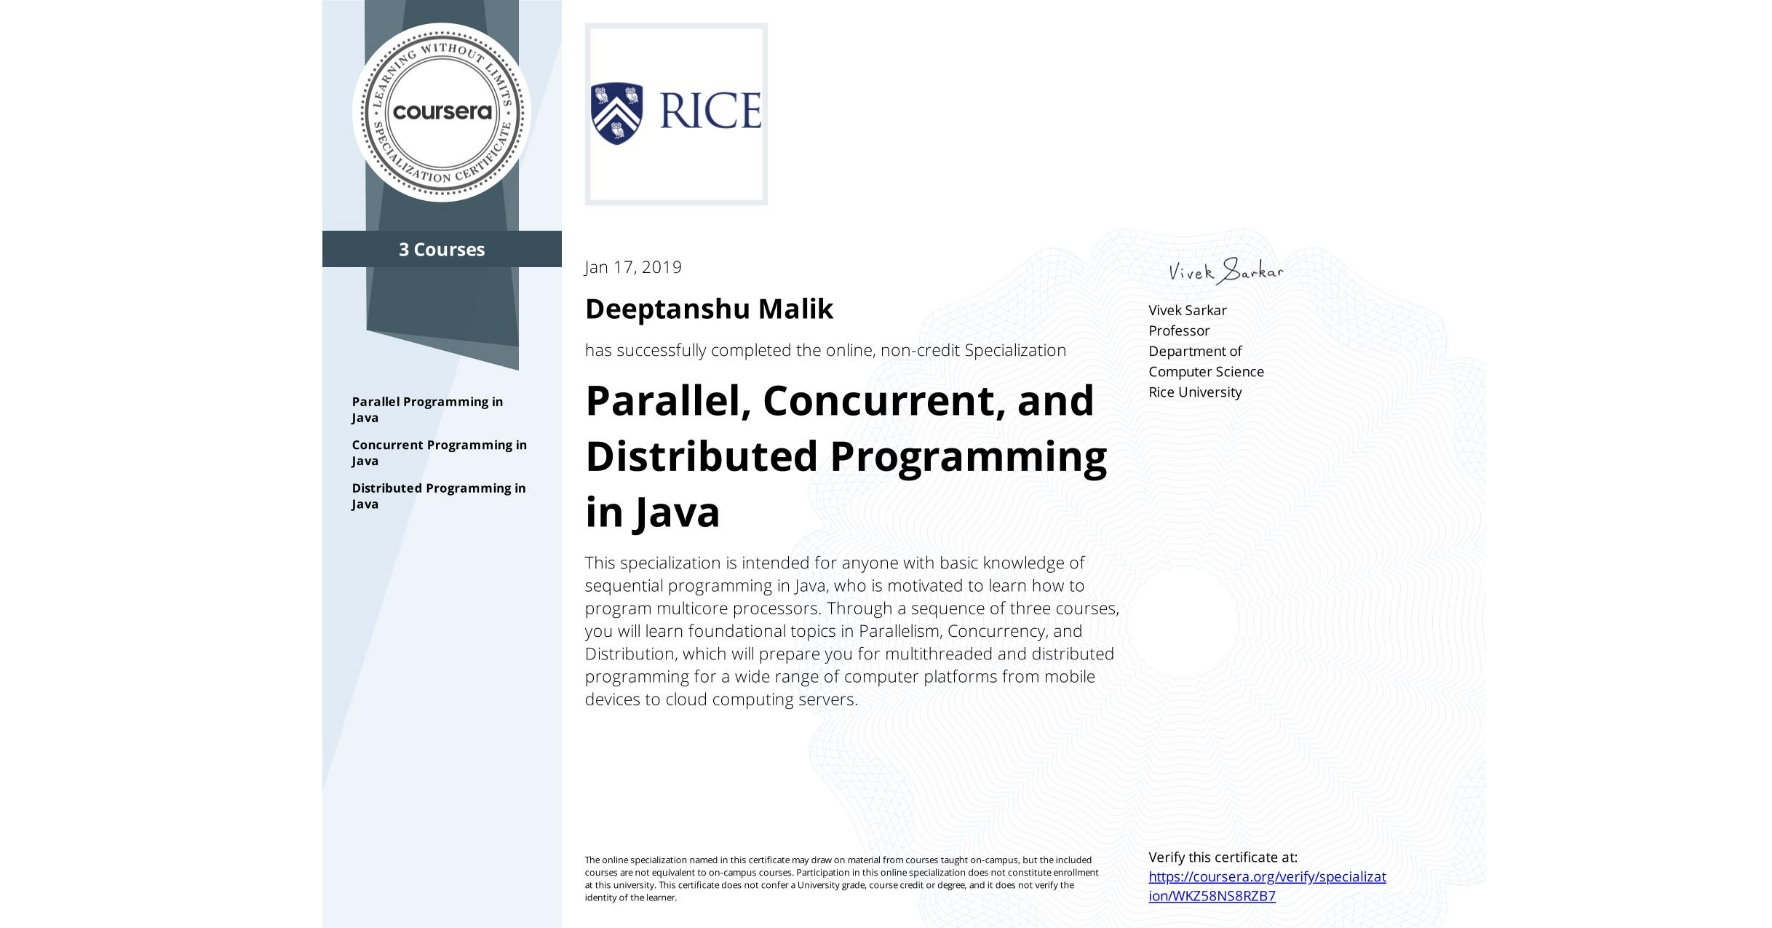 View certificate for Deeptanshu Malik, Parallel, Concurrent, and Distributed Programming in Java, offered through Coursera. This specialization is intended for anyone with basic knowledge of sequential programming in Java, who is motivated to learn how to program multicore processors. Through a sequence of three courses, you will learn foundational topics in Parallelism, Concurrency, and Distribution, which will prepare you for multithreaded and distributed programming for a wide range of computer platforms from mobile devices to cloud computing servers.